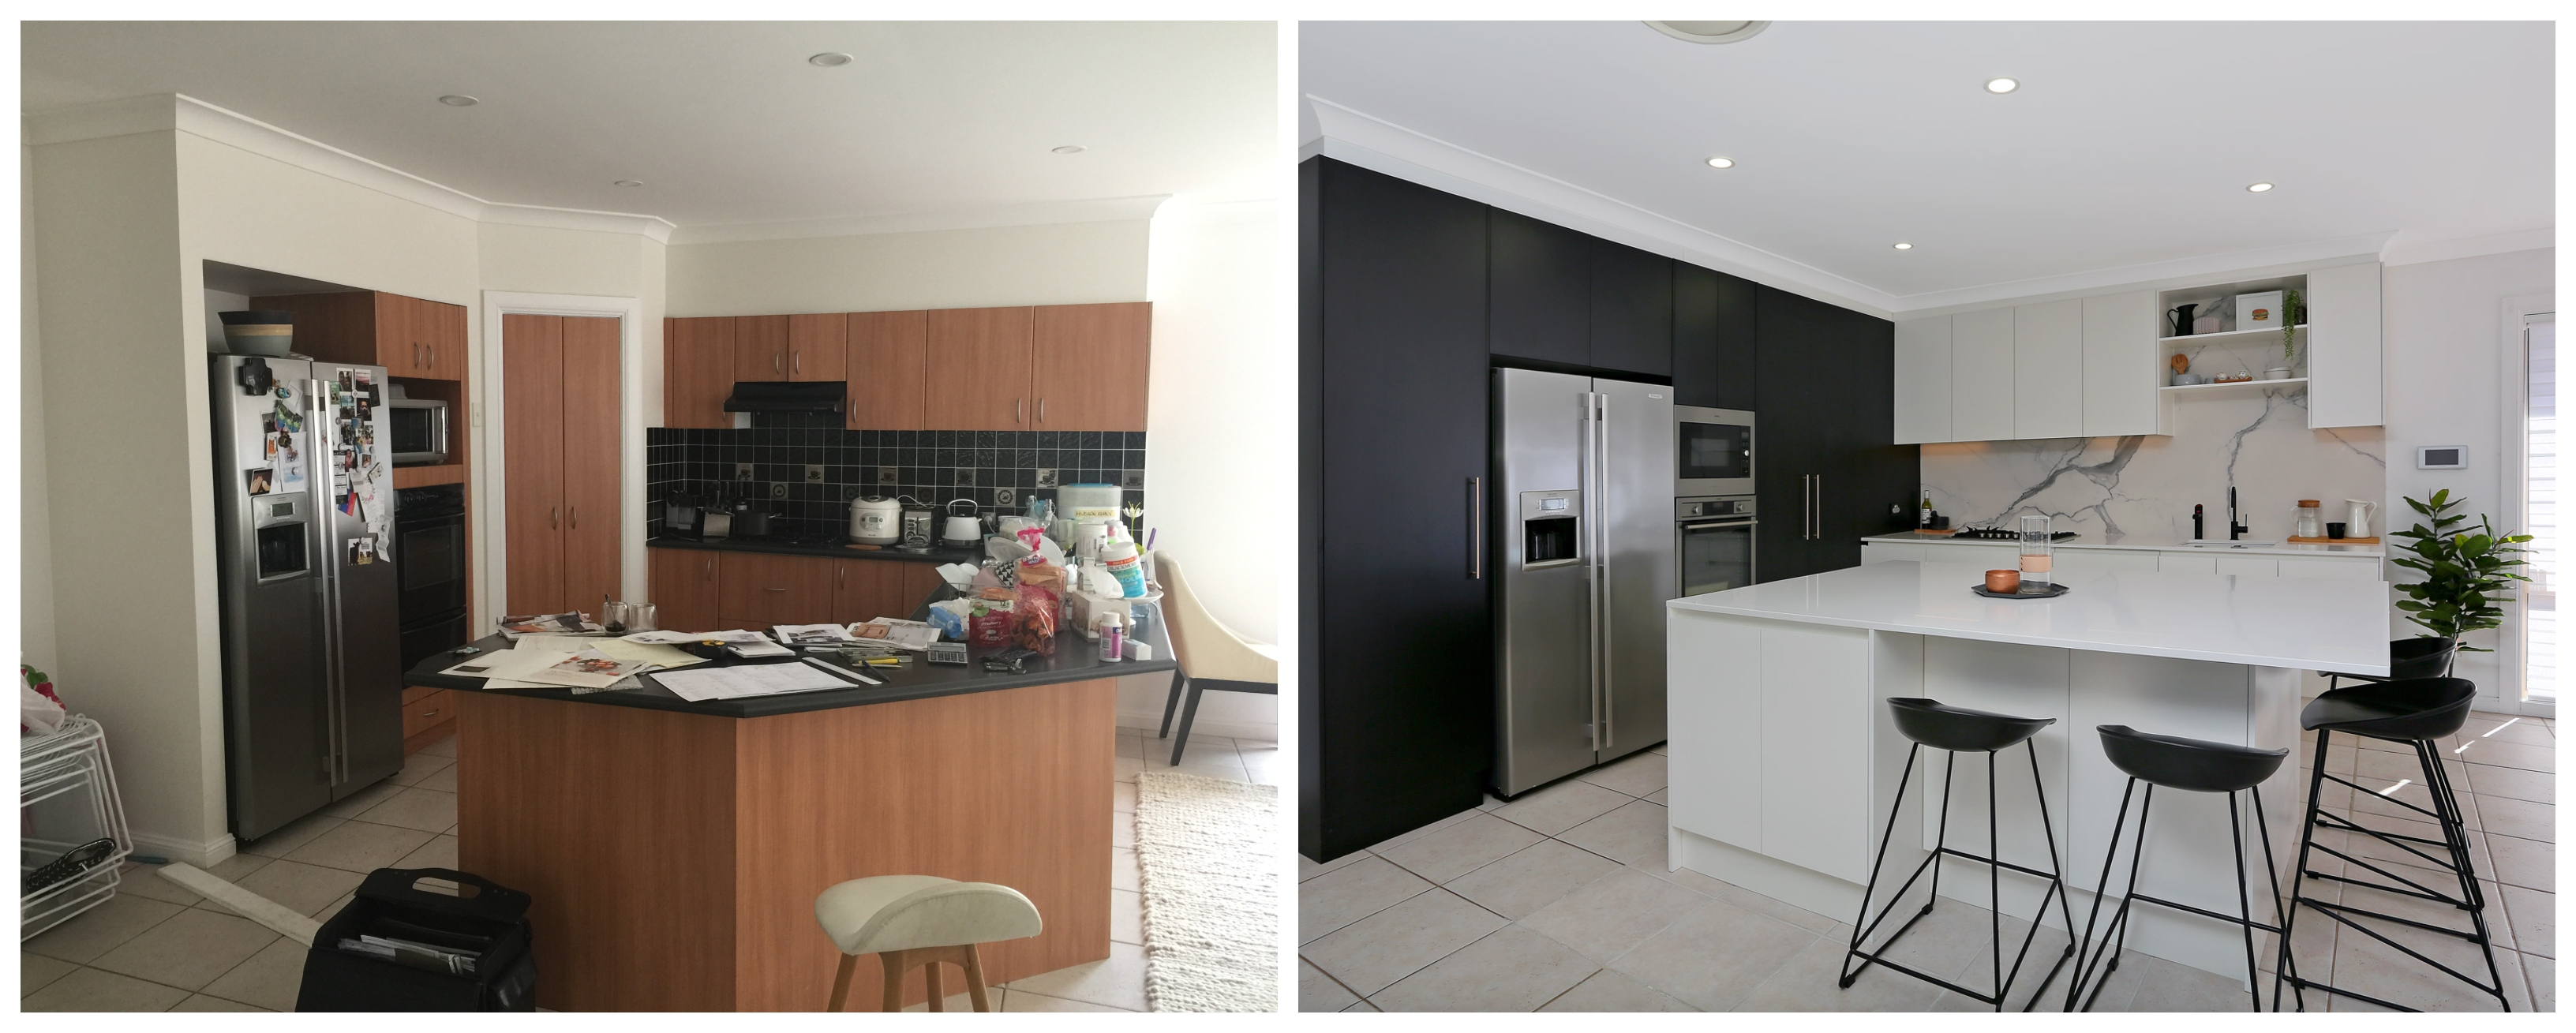 Before and After Renovation Sydney